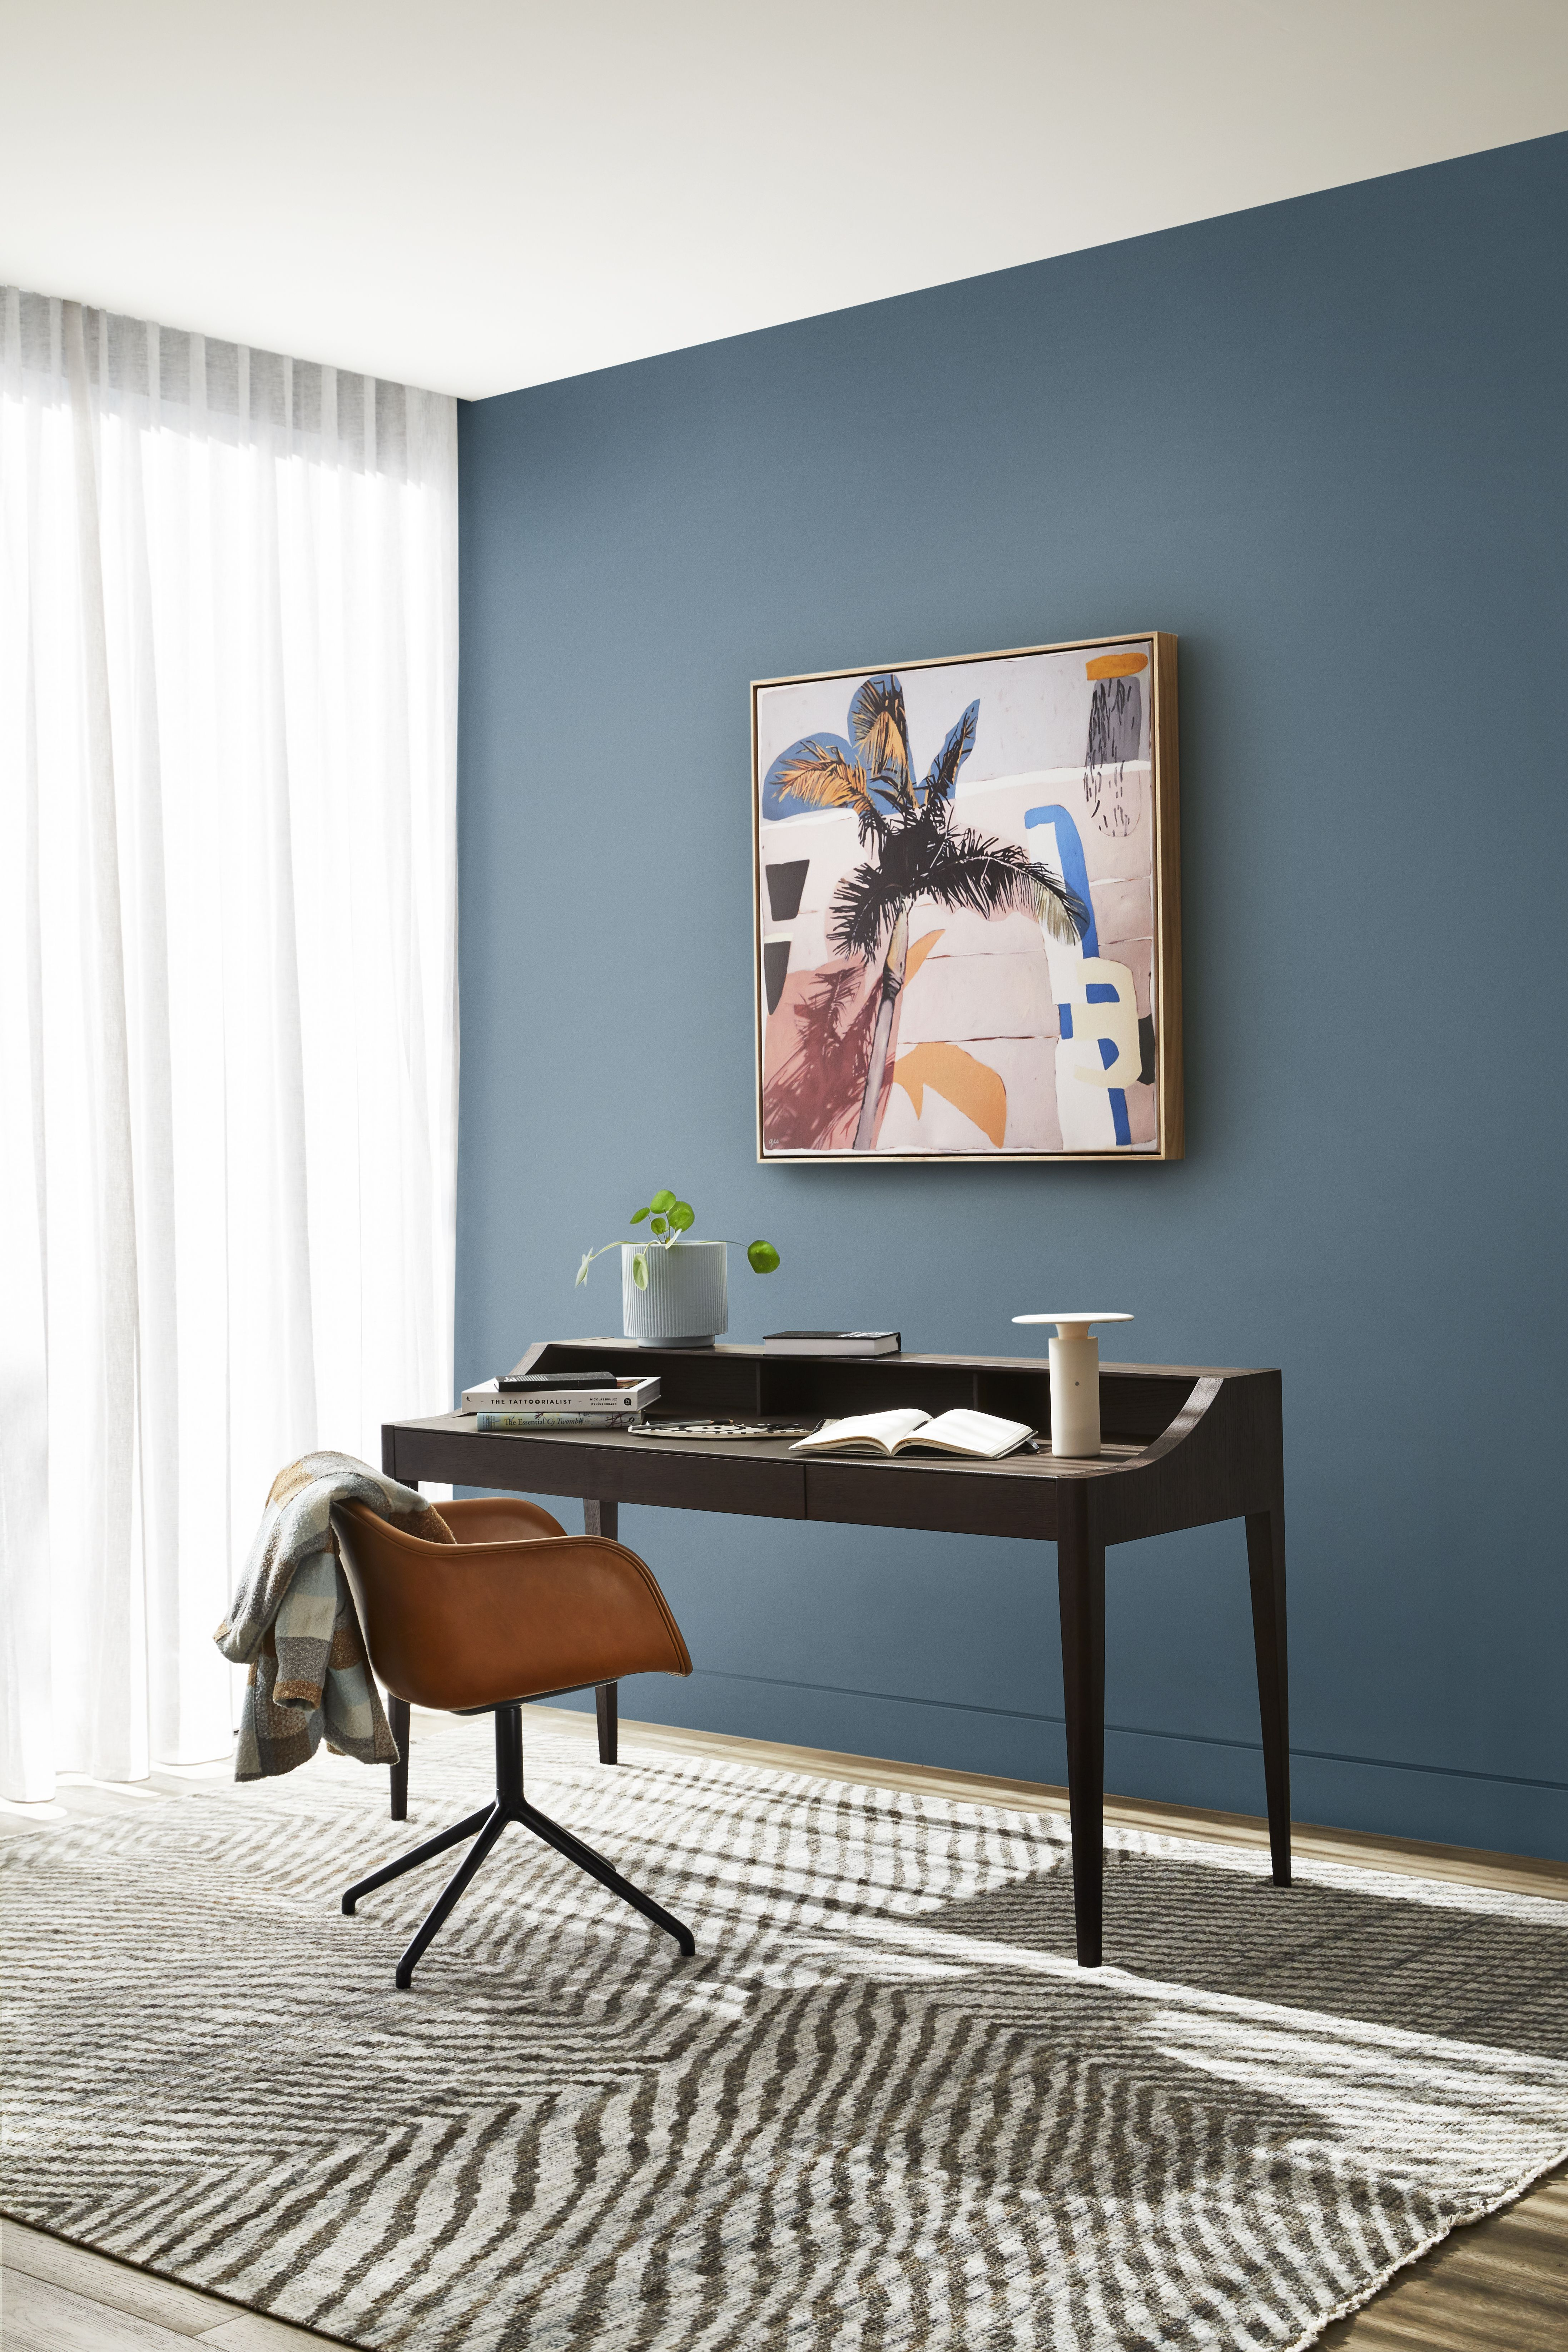 Desk With Blue Wall Behind It And Bright Artwork In 2020 Trending Decor Dulux Colour Decor